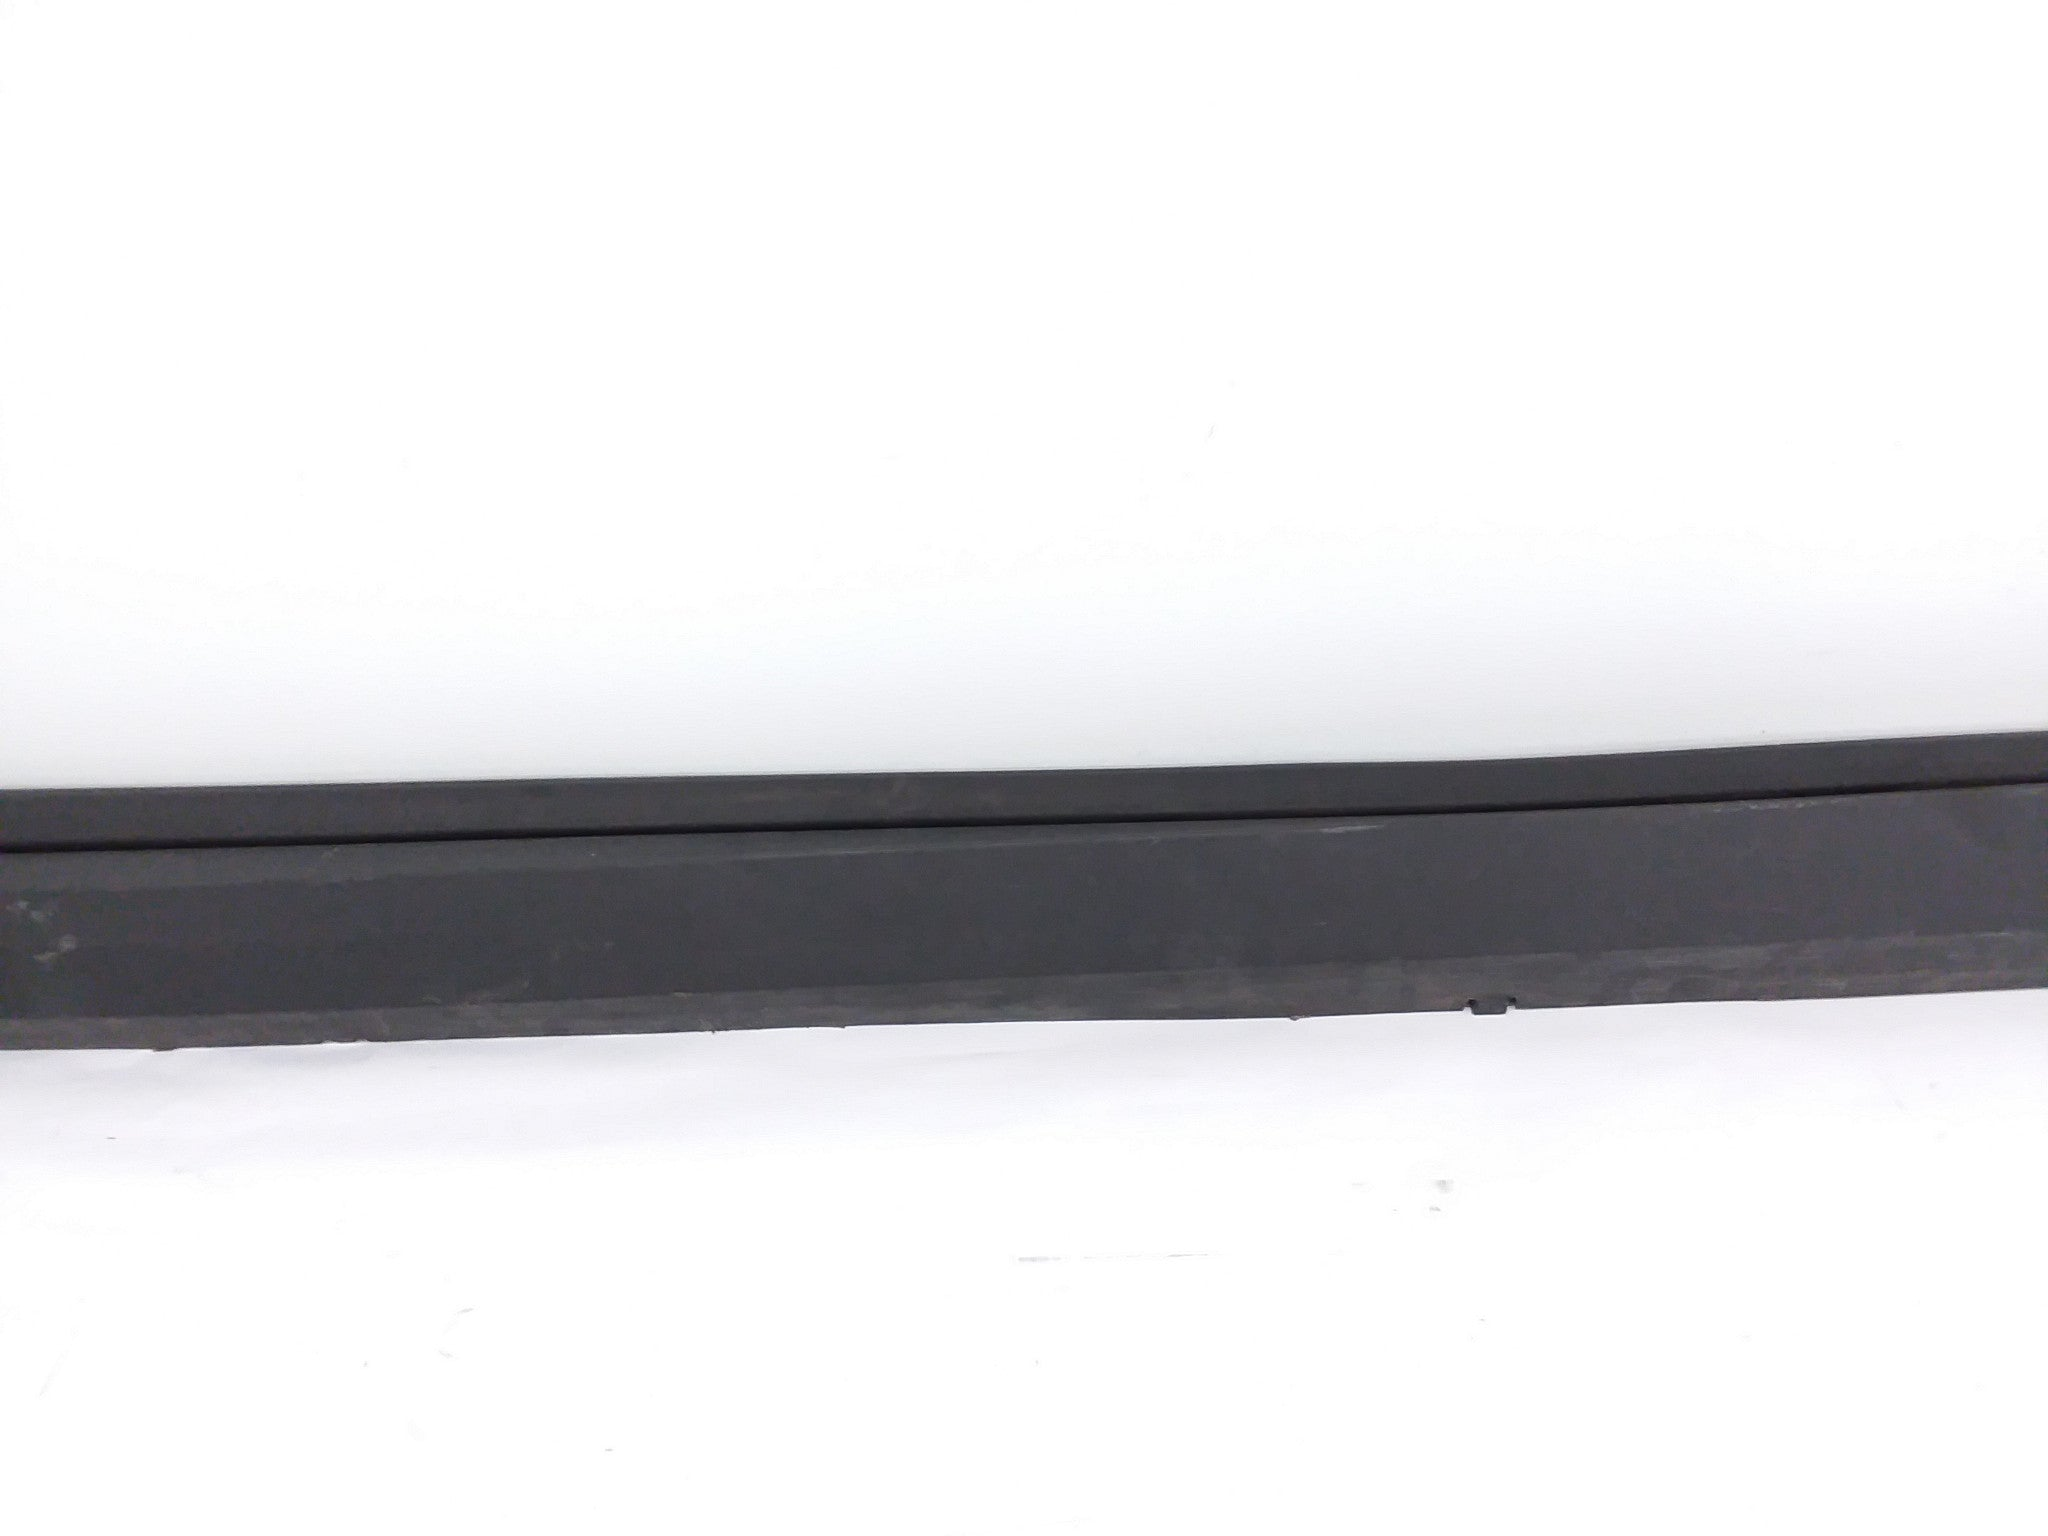 CADILLAC XT5 RIGHT PASSENGER ROCKER PANEL MOULDING TRIM 2017 2018 OEM 84100136